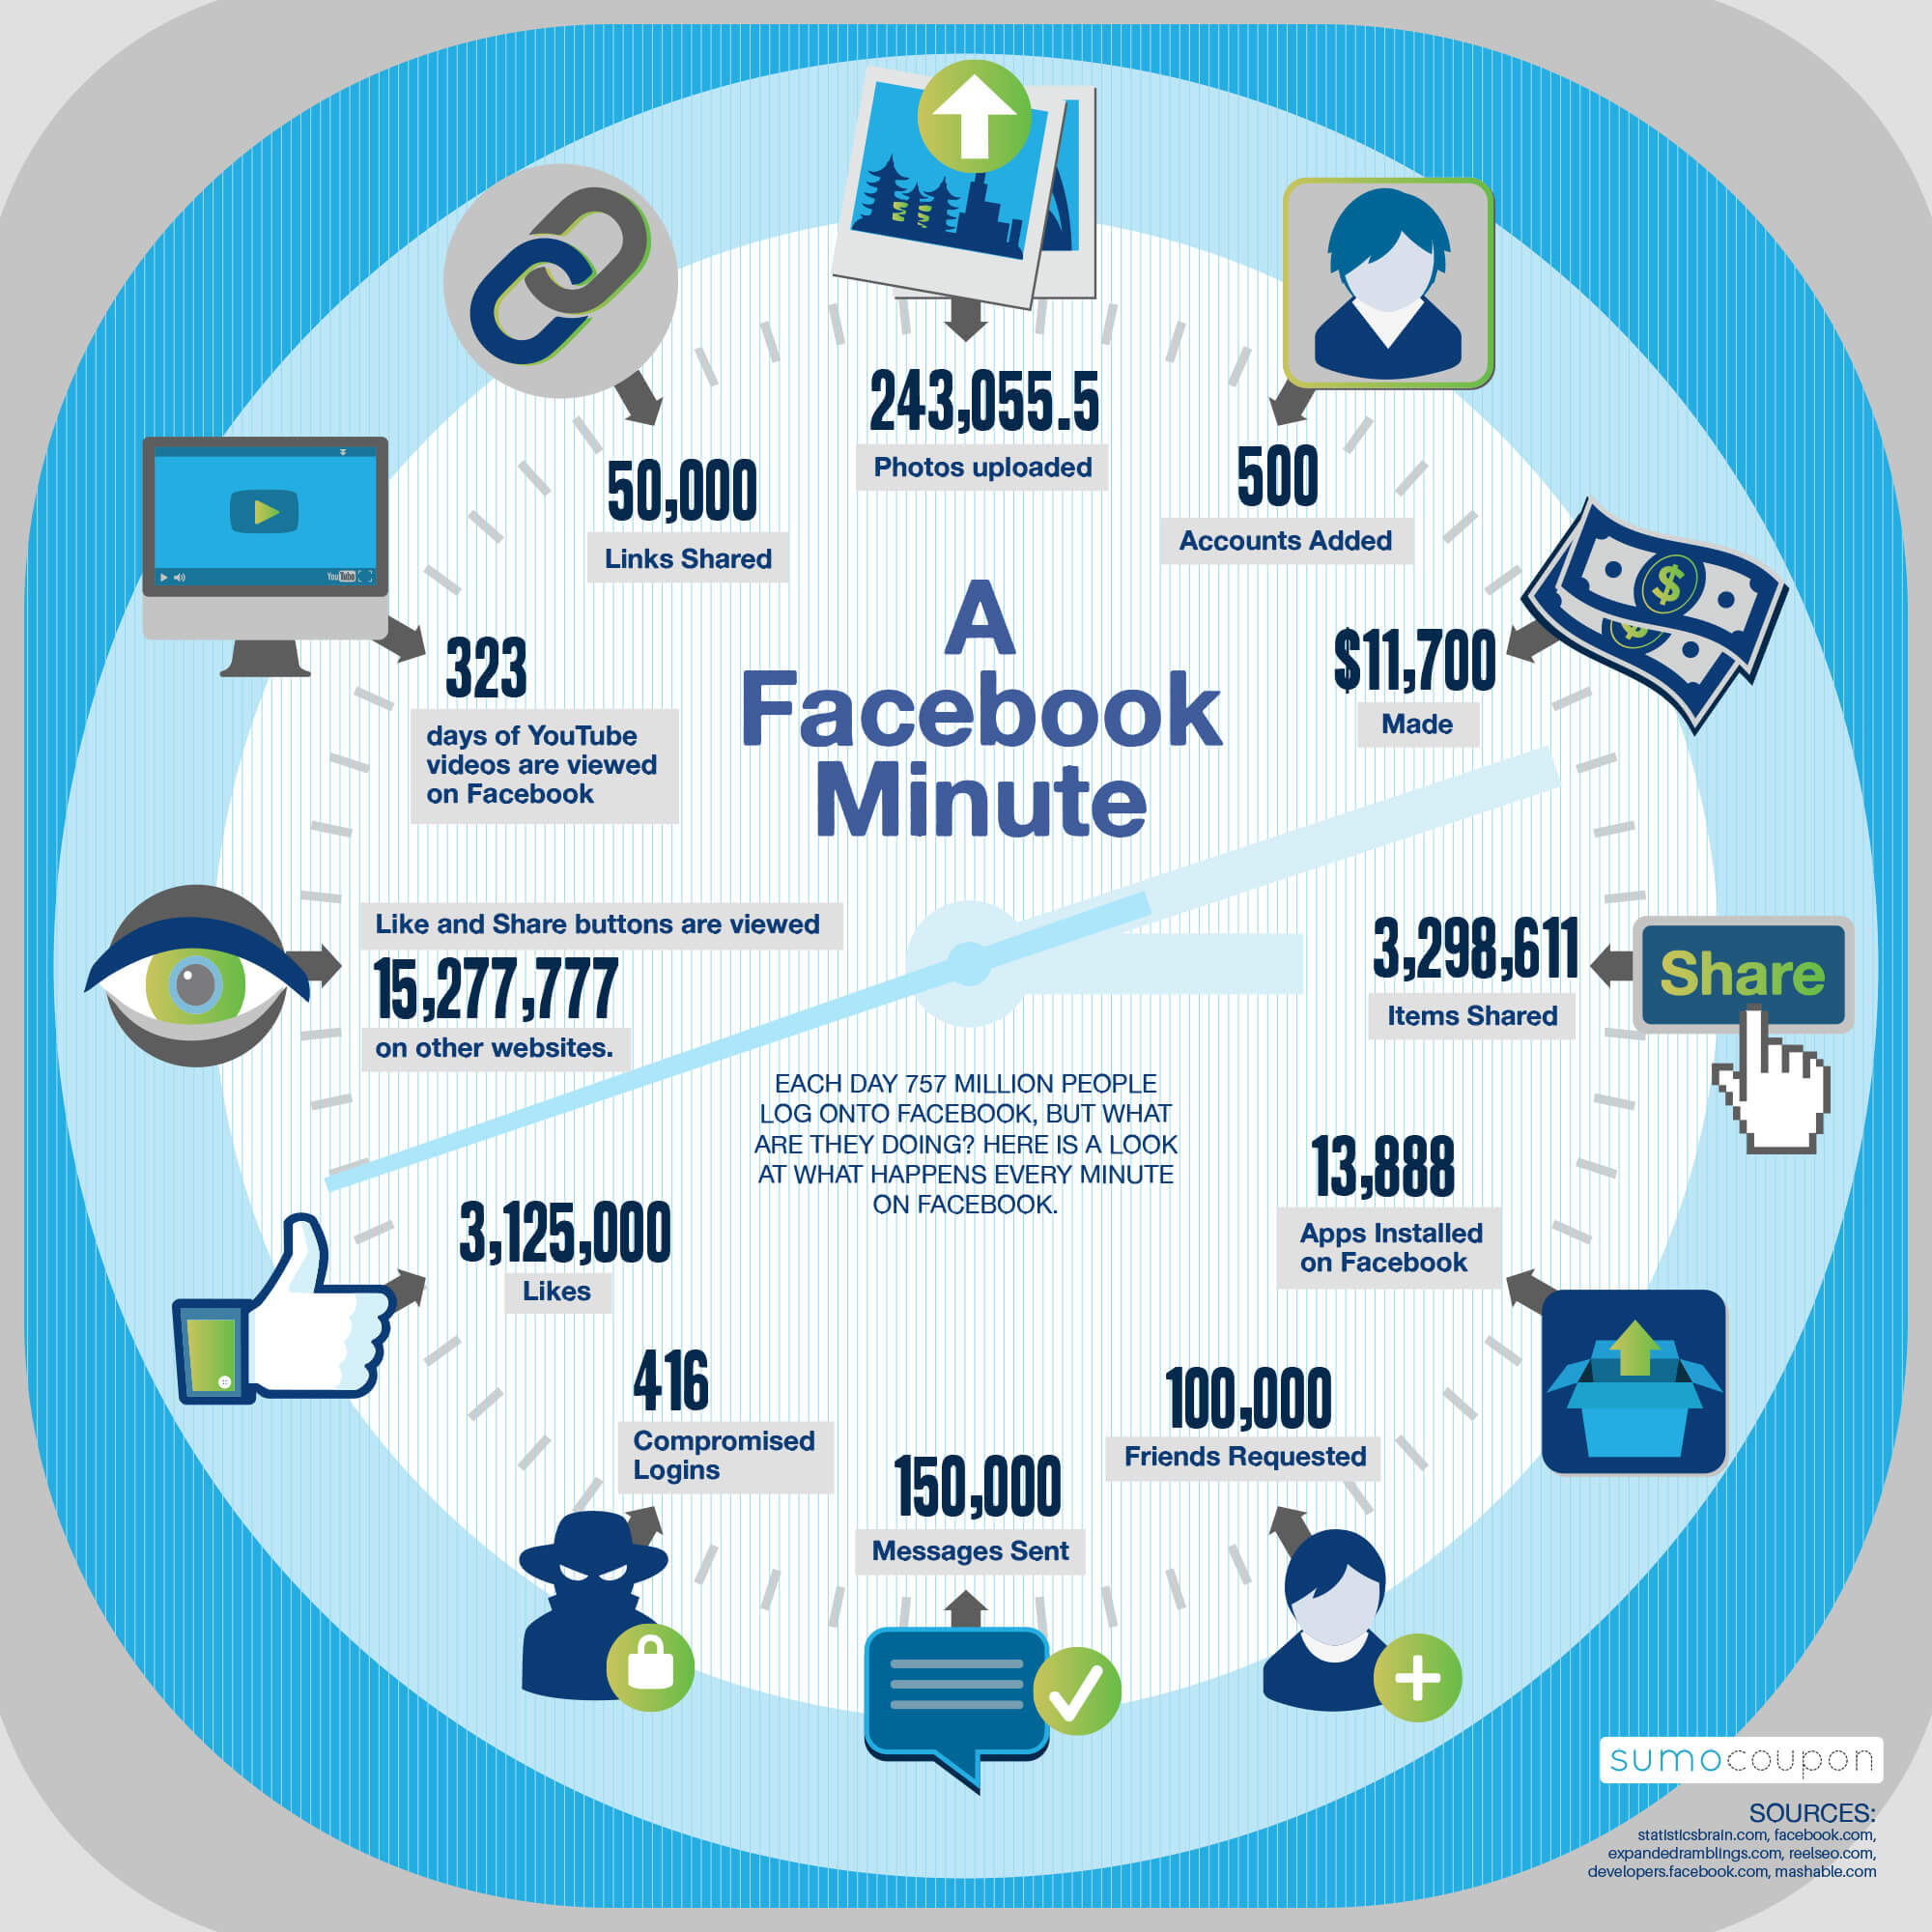 What Happens on Facebook in a Minute